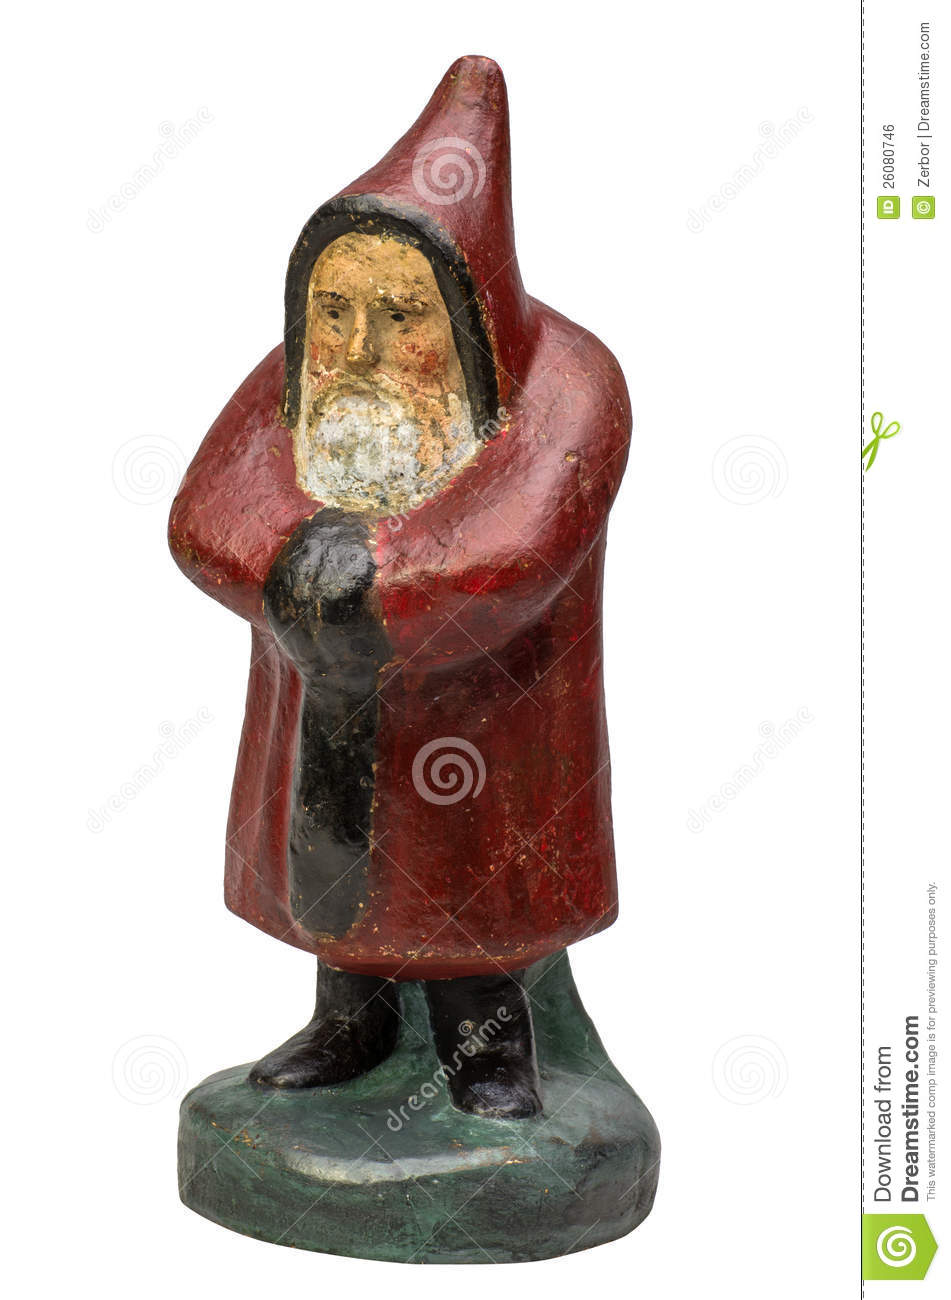 Antique santa claus figurine royalty free stock image